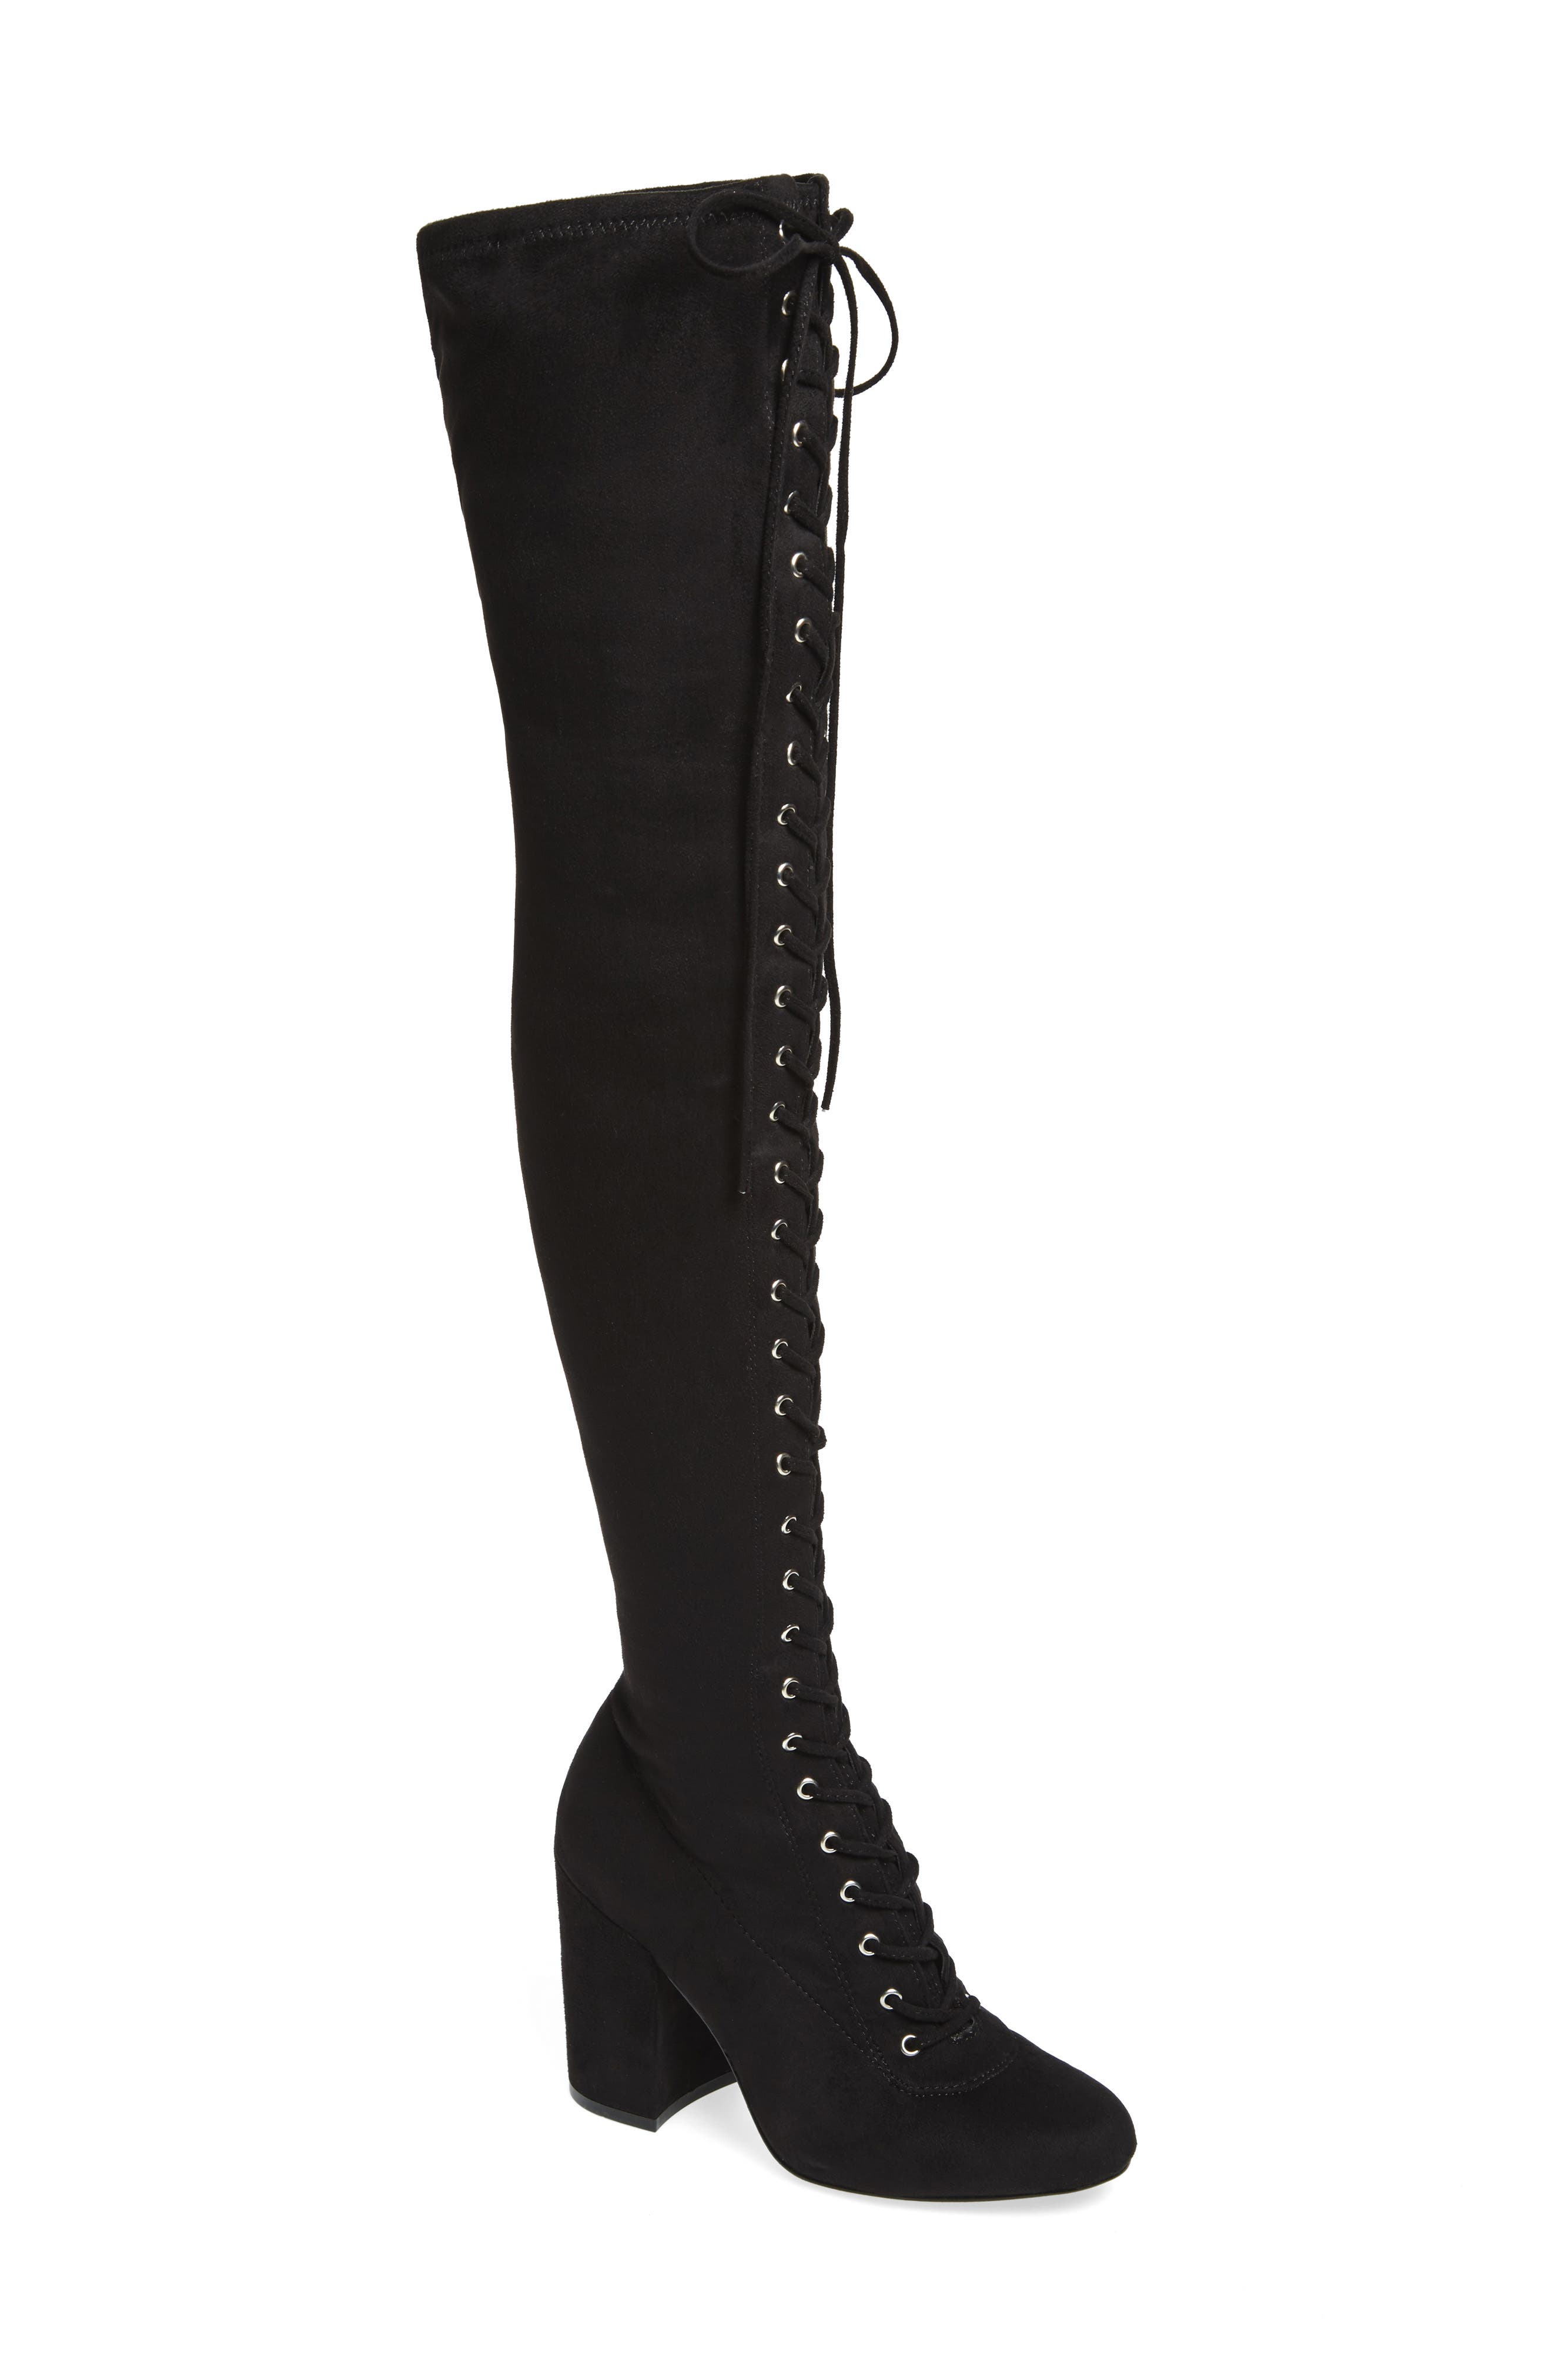 General Over the Knee Boot,                             Main thumbnail 1, color,                             Black Suede